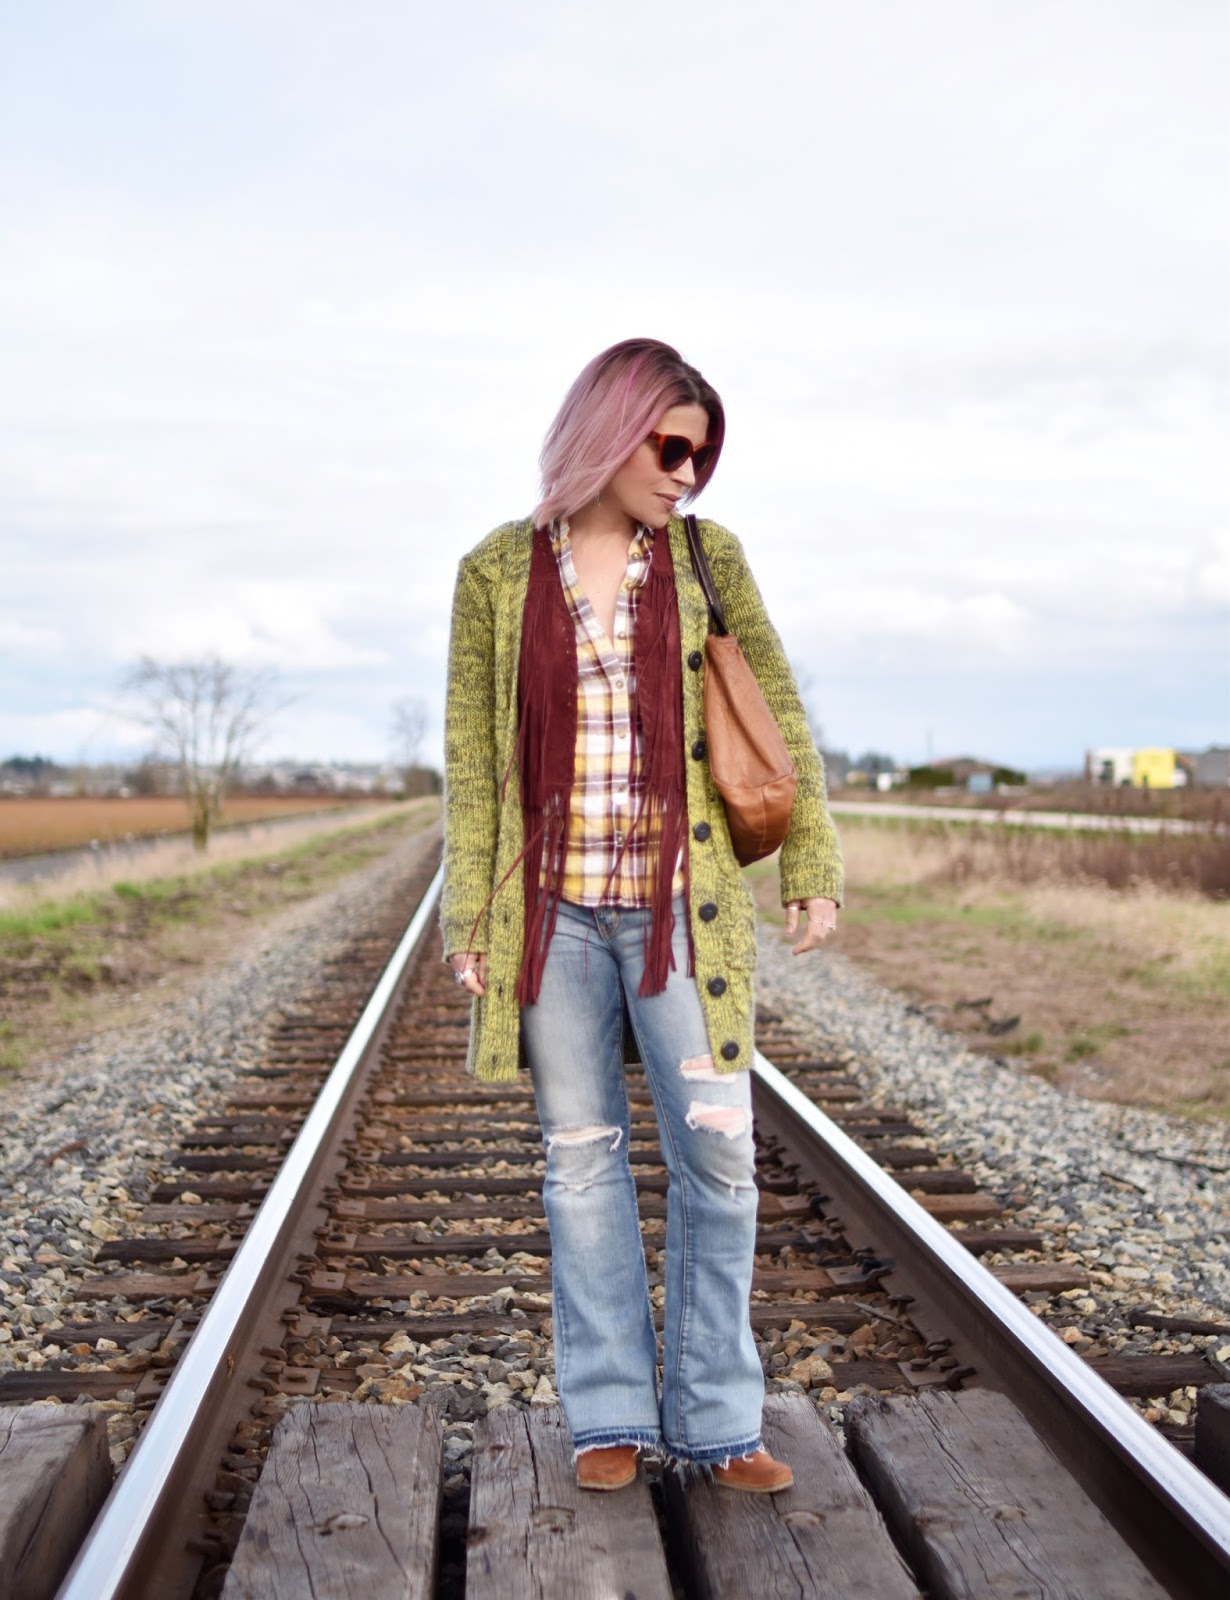 Monika Faulkner outfit inspiration - styling a plaid shirt, fringy vest, distressed flare jeans, and grandpa cardigan